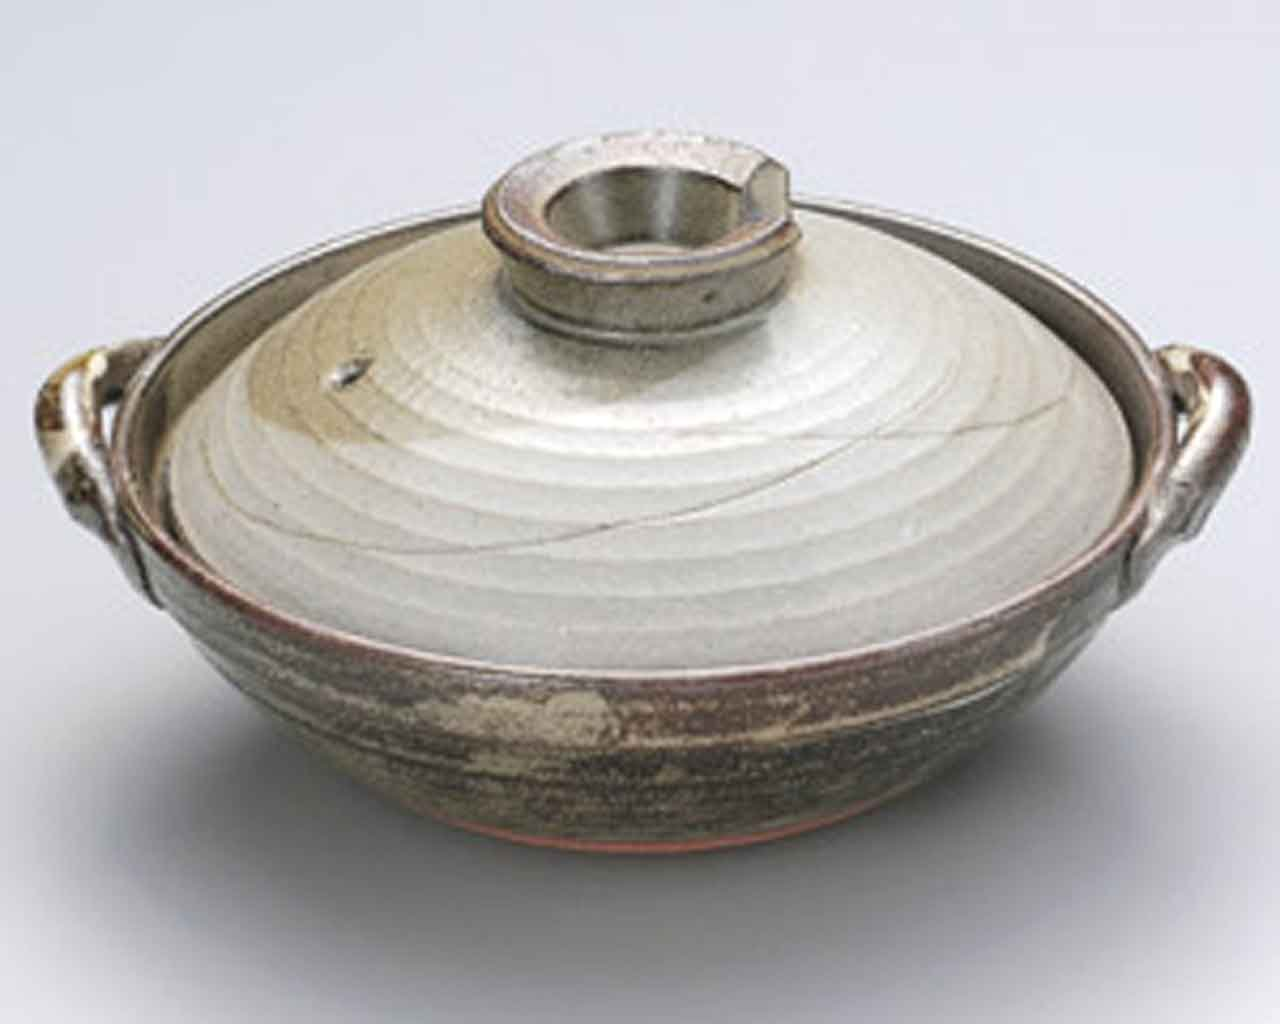 Kyoto-Iori for 5-6 persons 13inch Donabe Japanese Hot pot Grey Ceramic Made in Japan